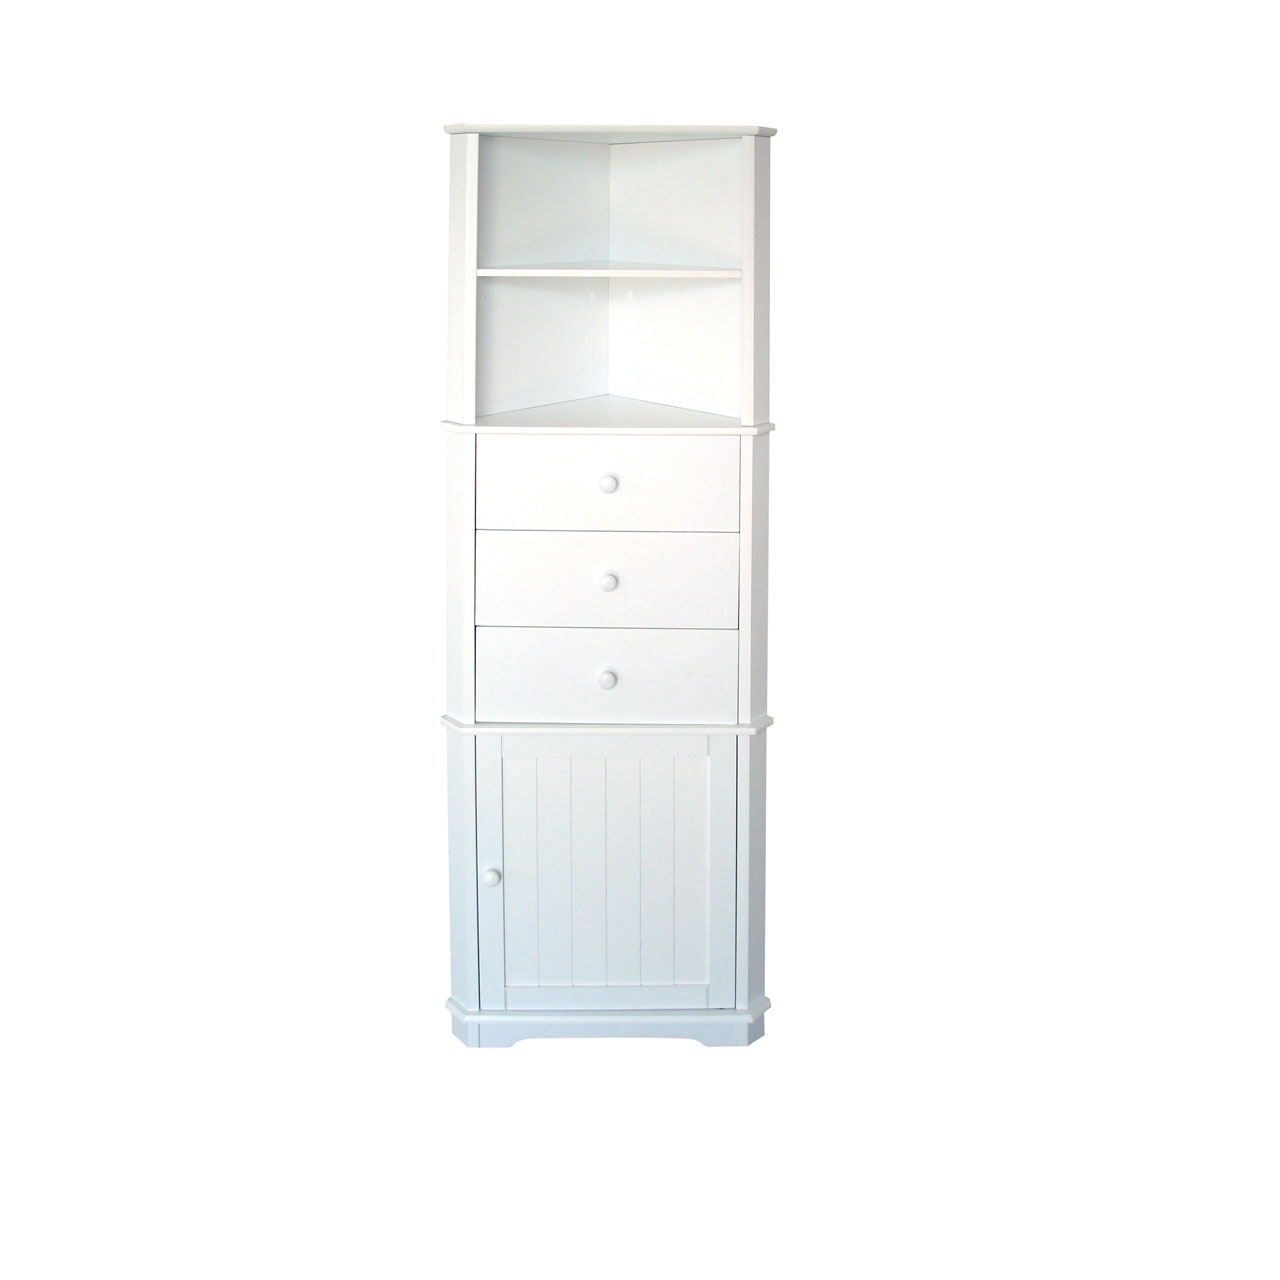 White wood bathroom kitchen corner unit cupboard drawers shelves storage ebay Bathroom corner cabinet storage